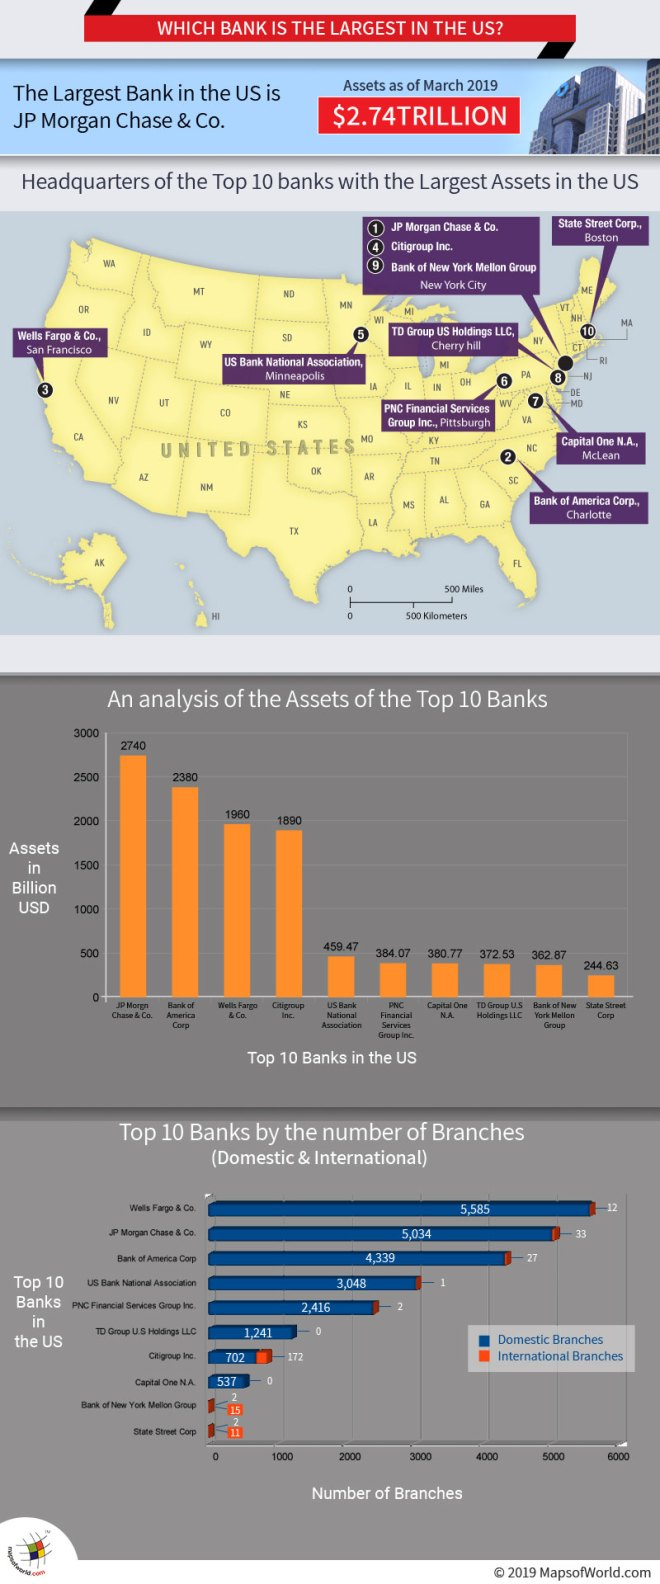 Which Bank is the Largest in the US?